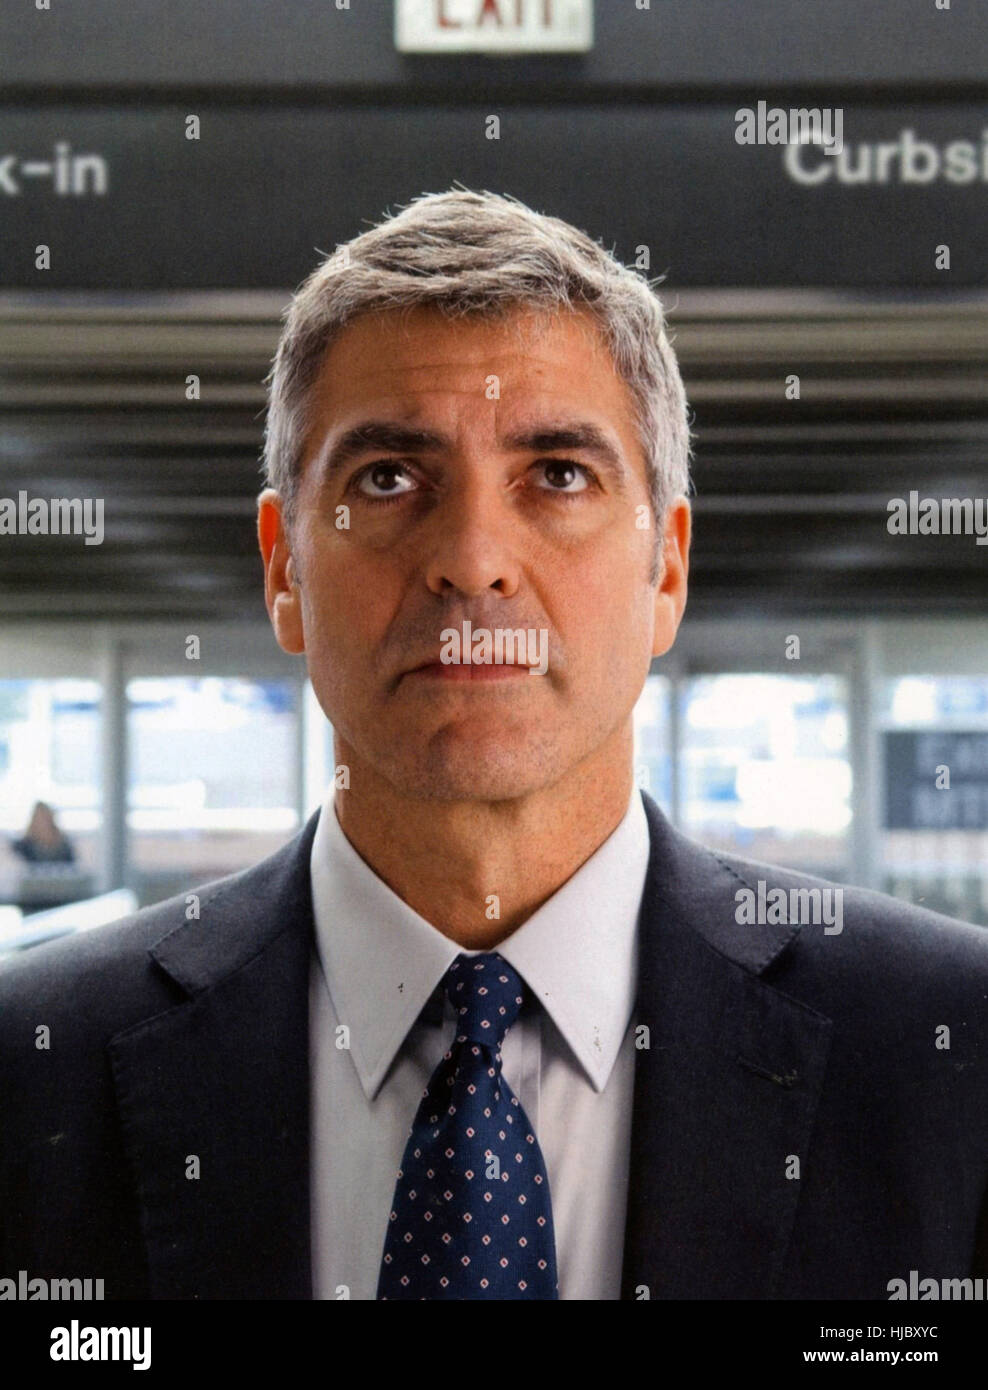 UP IN THE AIR 2009 Paramount Pictures film with George Clooney - Stock Image